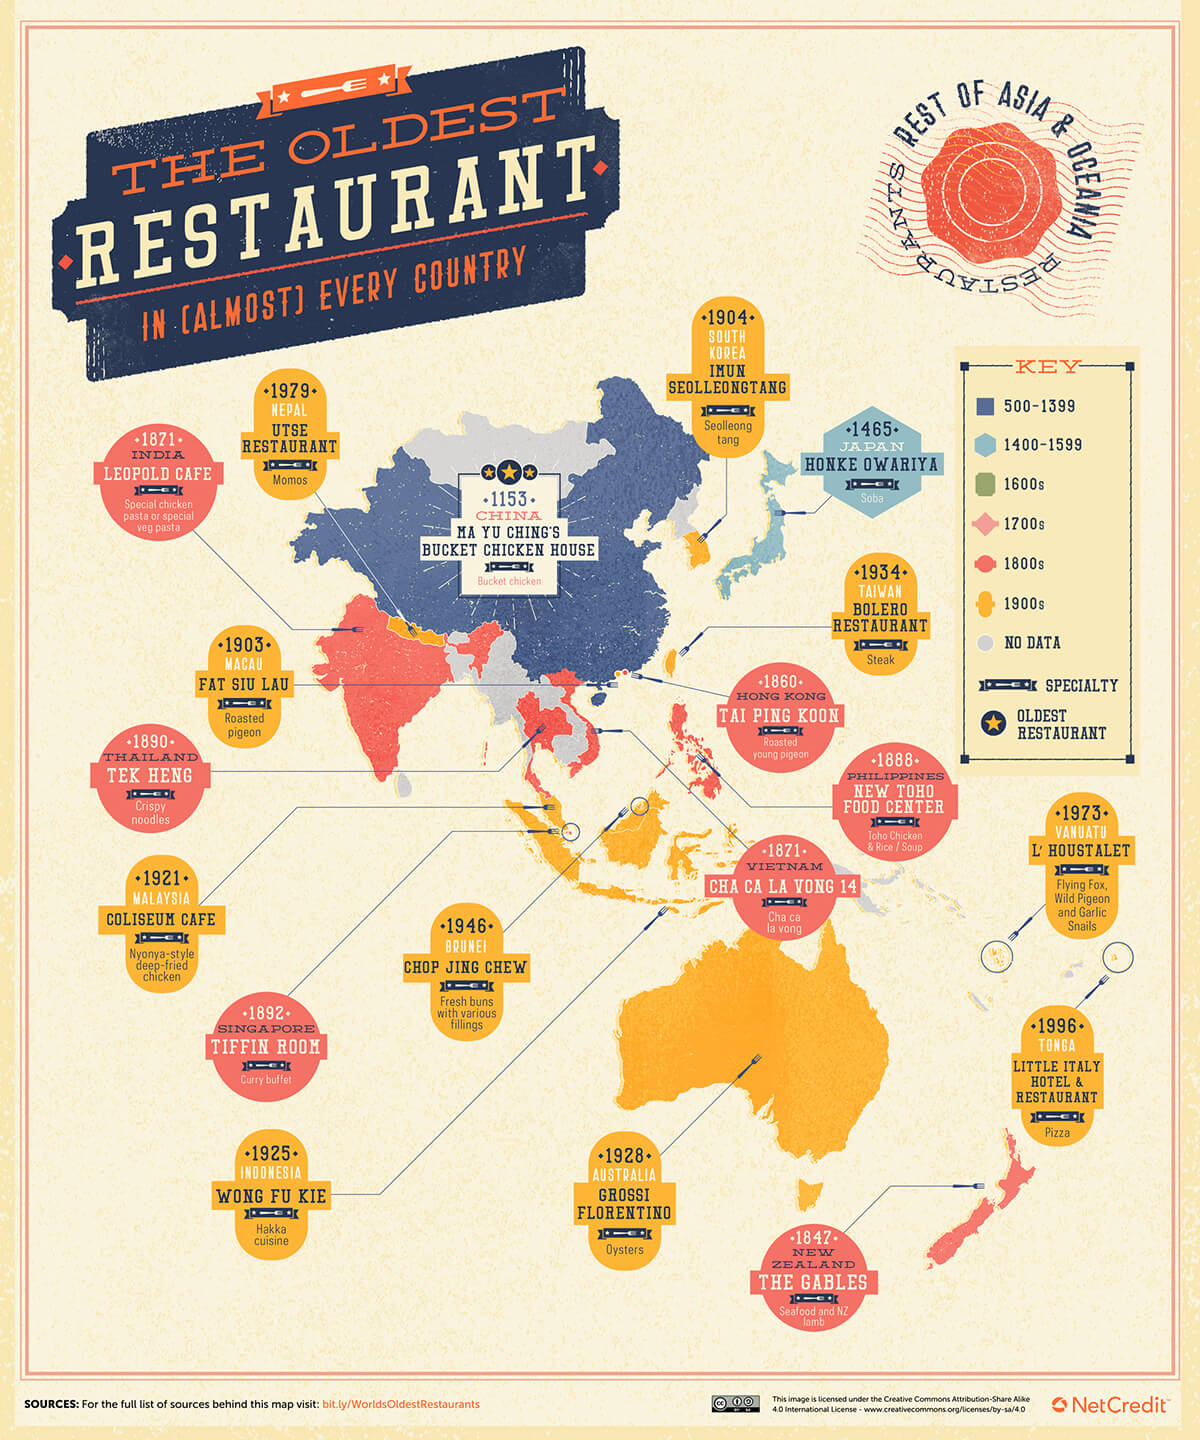 07_The-Oldest-Restaurant-in-Almost-Every-Country_RestofAsiaOceania.jpg